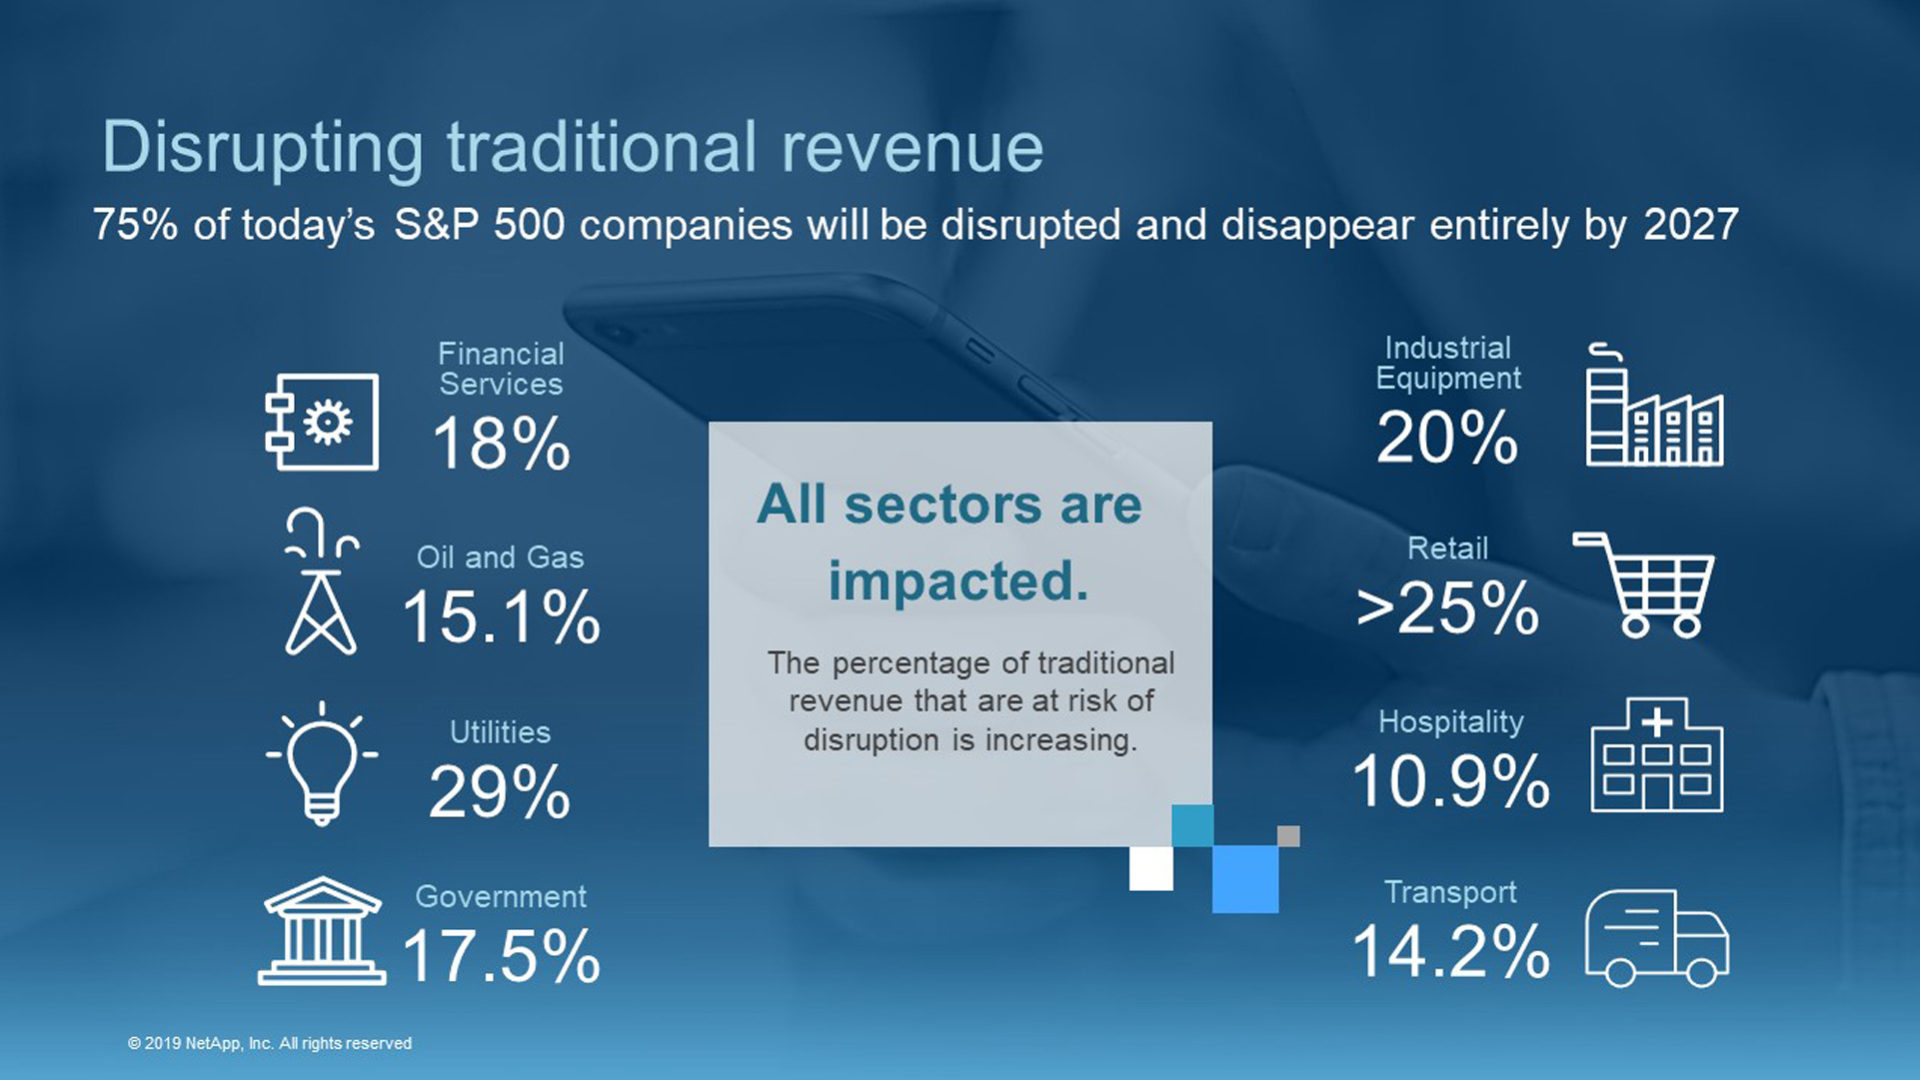 grafico: disrupting traditional revenue